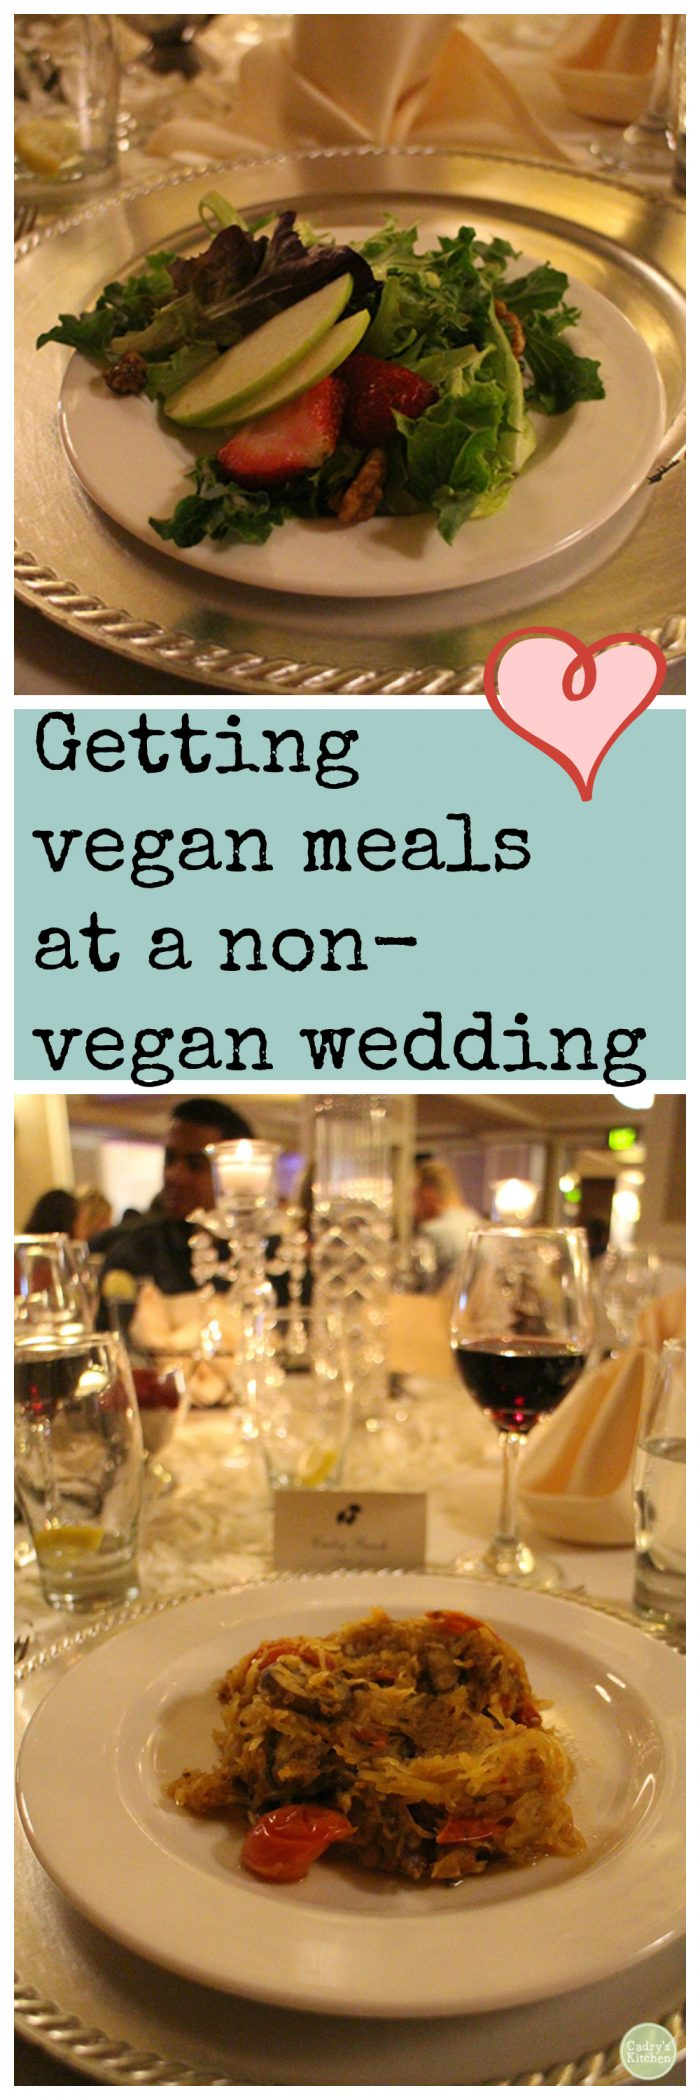 Vegan but going to a non-vegan wedding? Here's how to make sure you don't go through the night hungry. | cadryskitchen.com